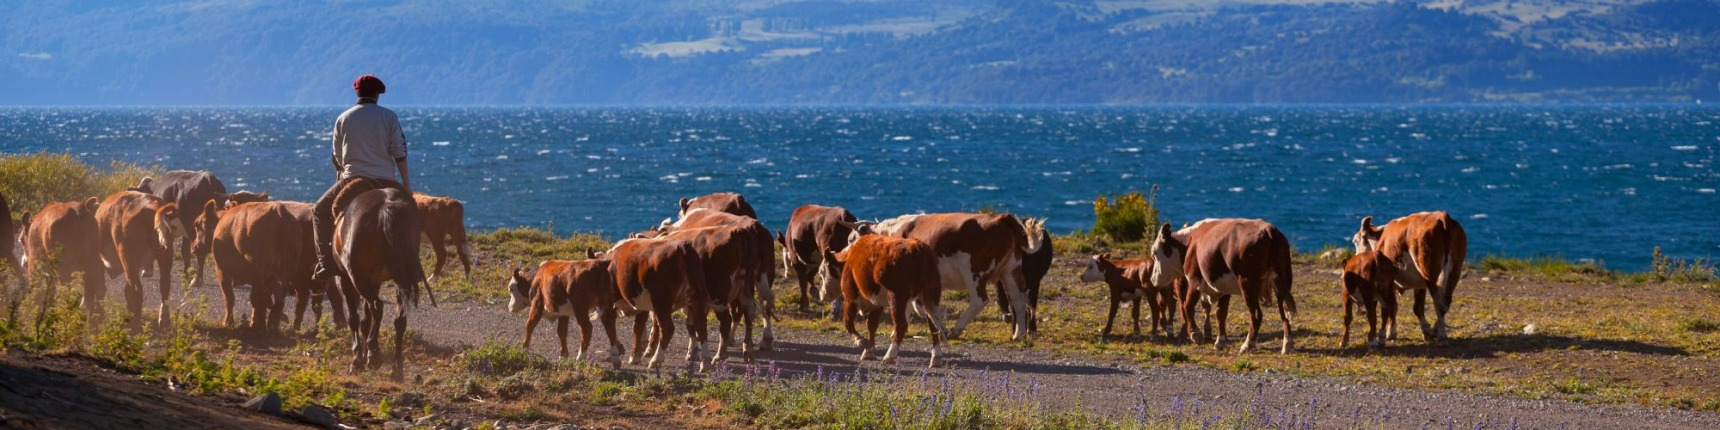 Argentina, countryside, farmer herding cows